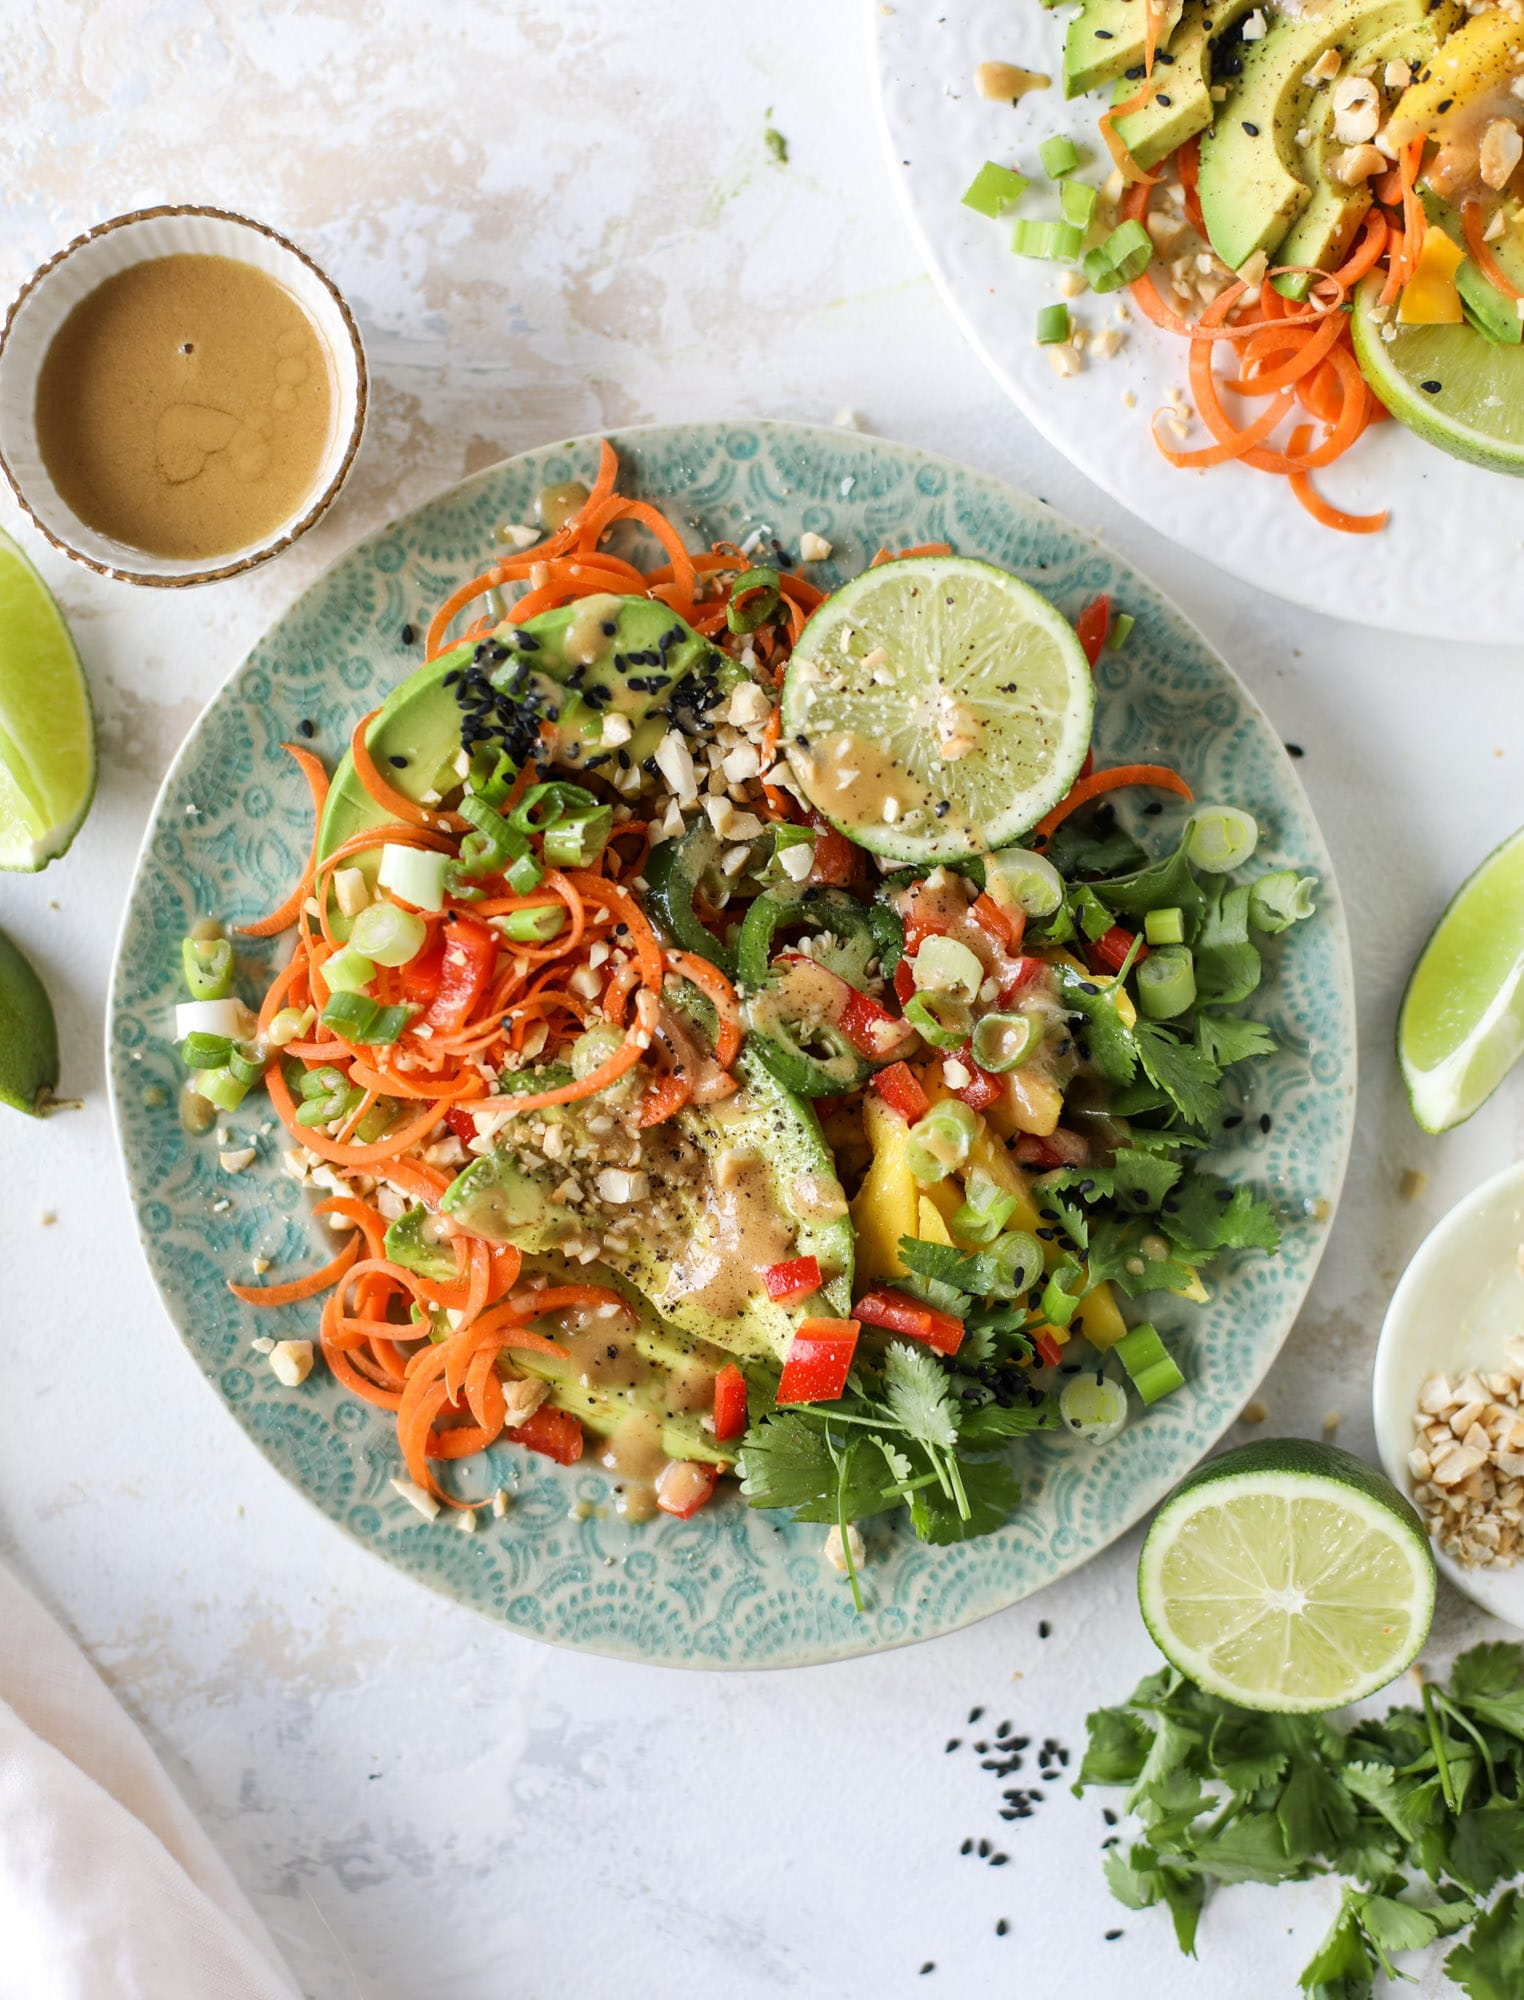 This thai avocado salad is loaded with mango, red pepper, carrots, green onions and drizzled with a peanut butter vinaigrette. It's an amazing side salad or a fabulous dinner salad - add on chickpeas or shrimp or chicken if you wish! I howsweeteats.com #thai #avocado #salad #peanutbutter #mango #lime